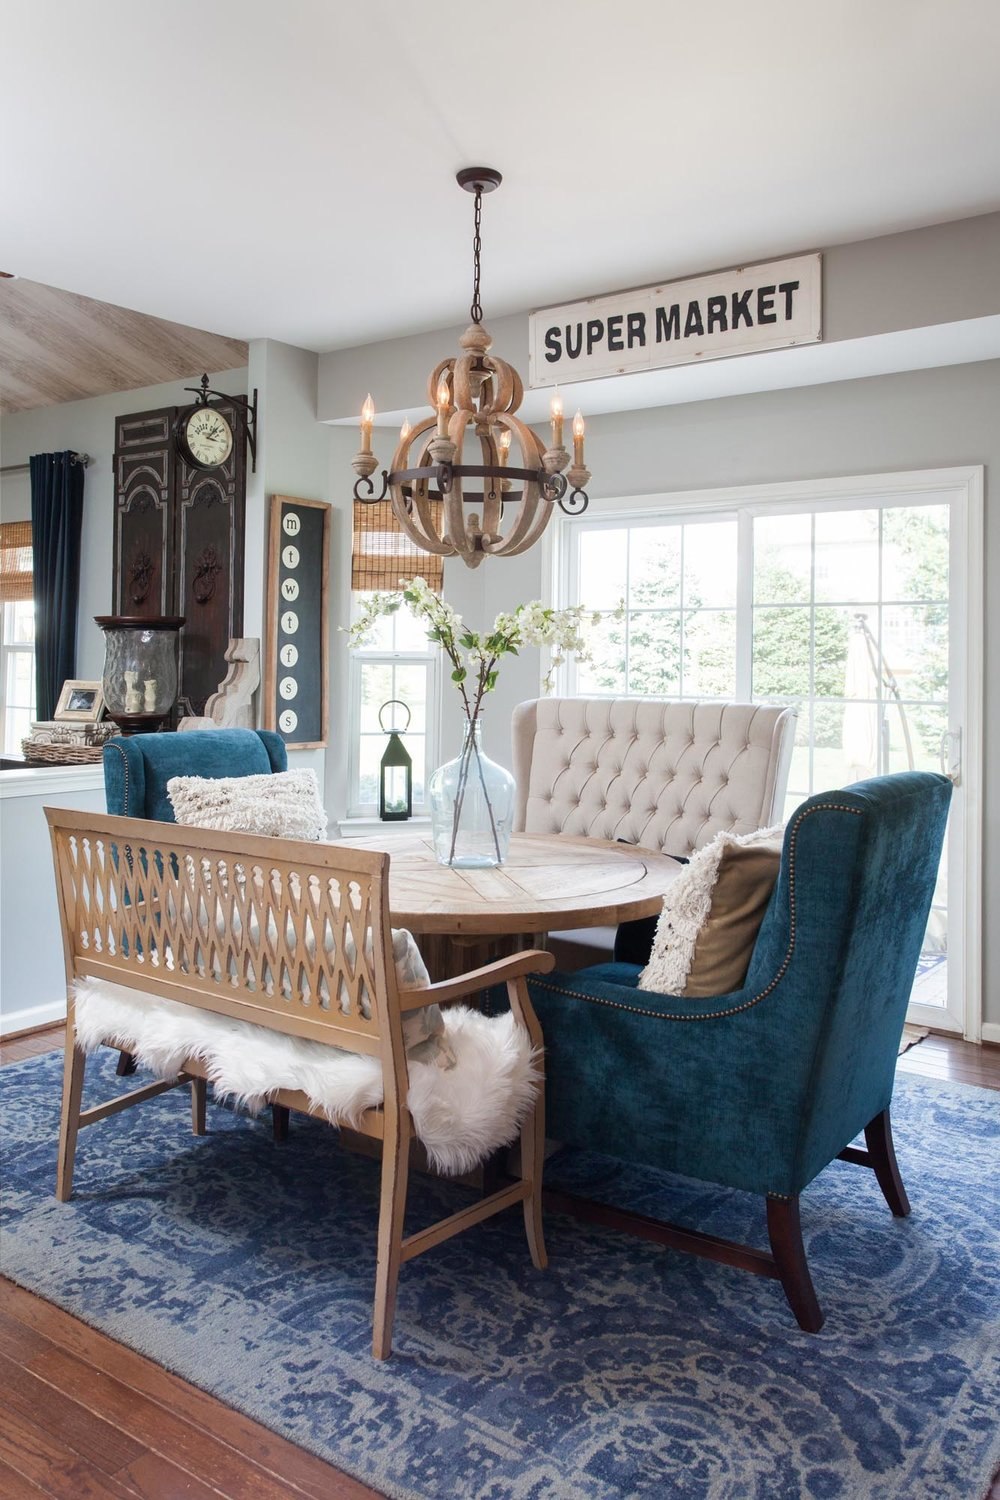 Bright breakfast nook with round wooden table and hanging wooden light fixture